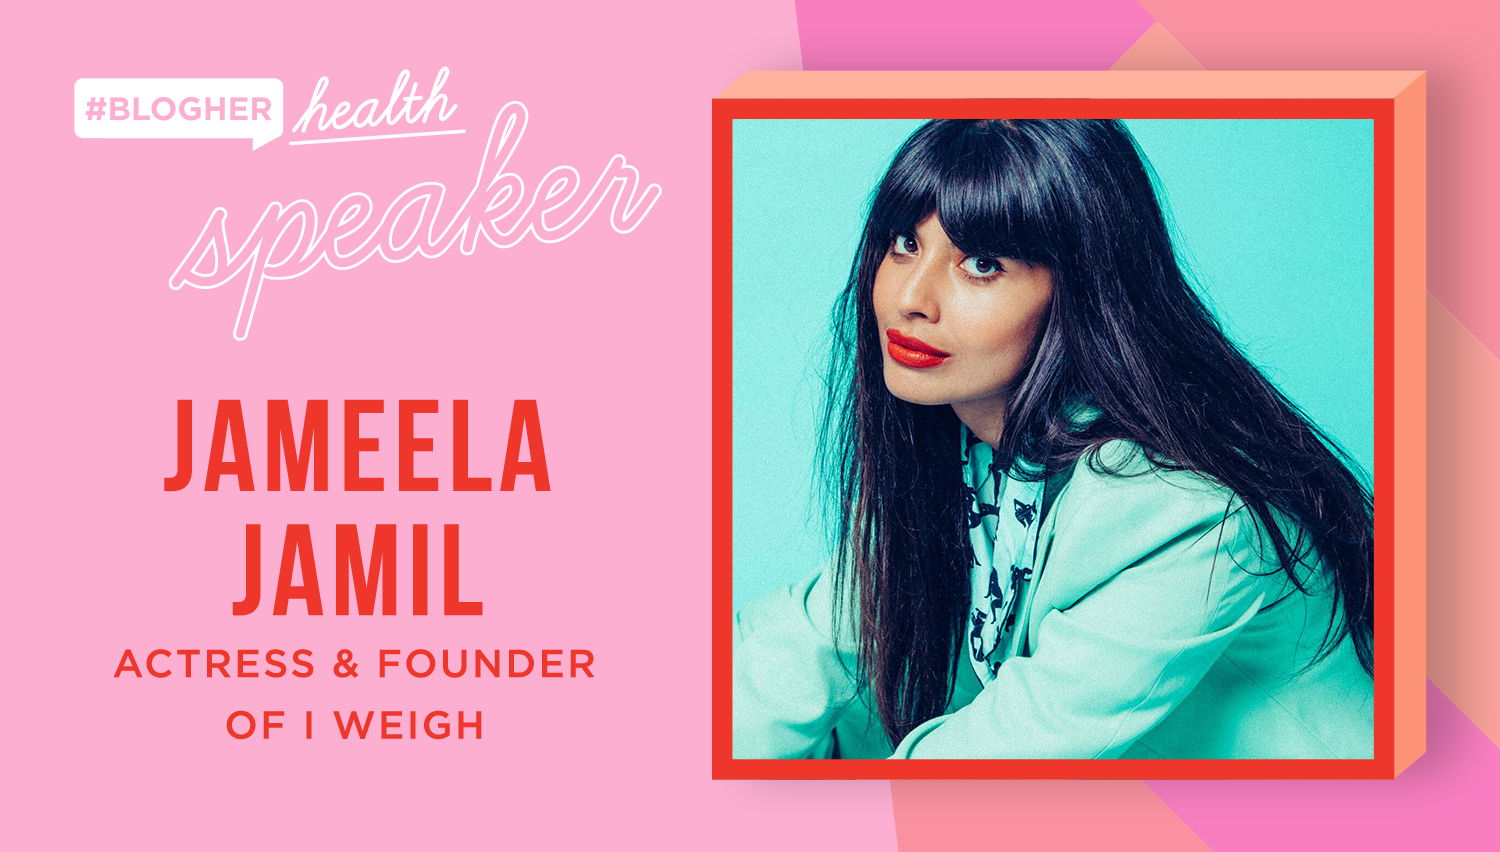 """Welcome Jameela jamil - Jameela Jamil will join us at BlogHer Health to discuss the value of women and """"I Weigh"""", a movement that has changed the conversation on how women measure self-worth."""